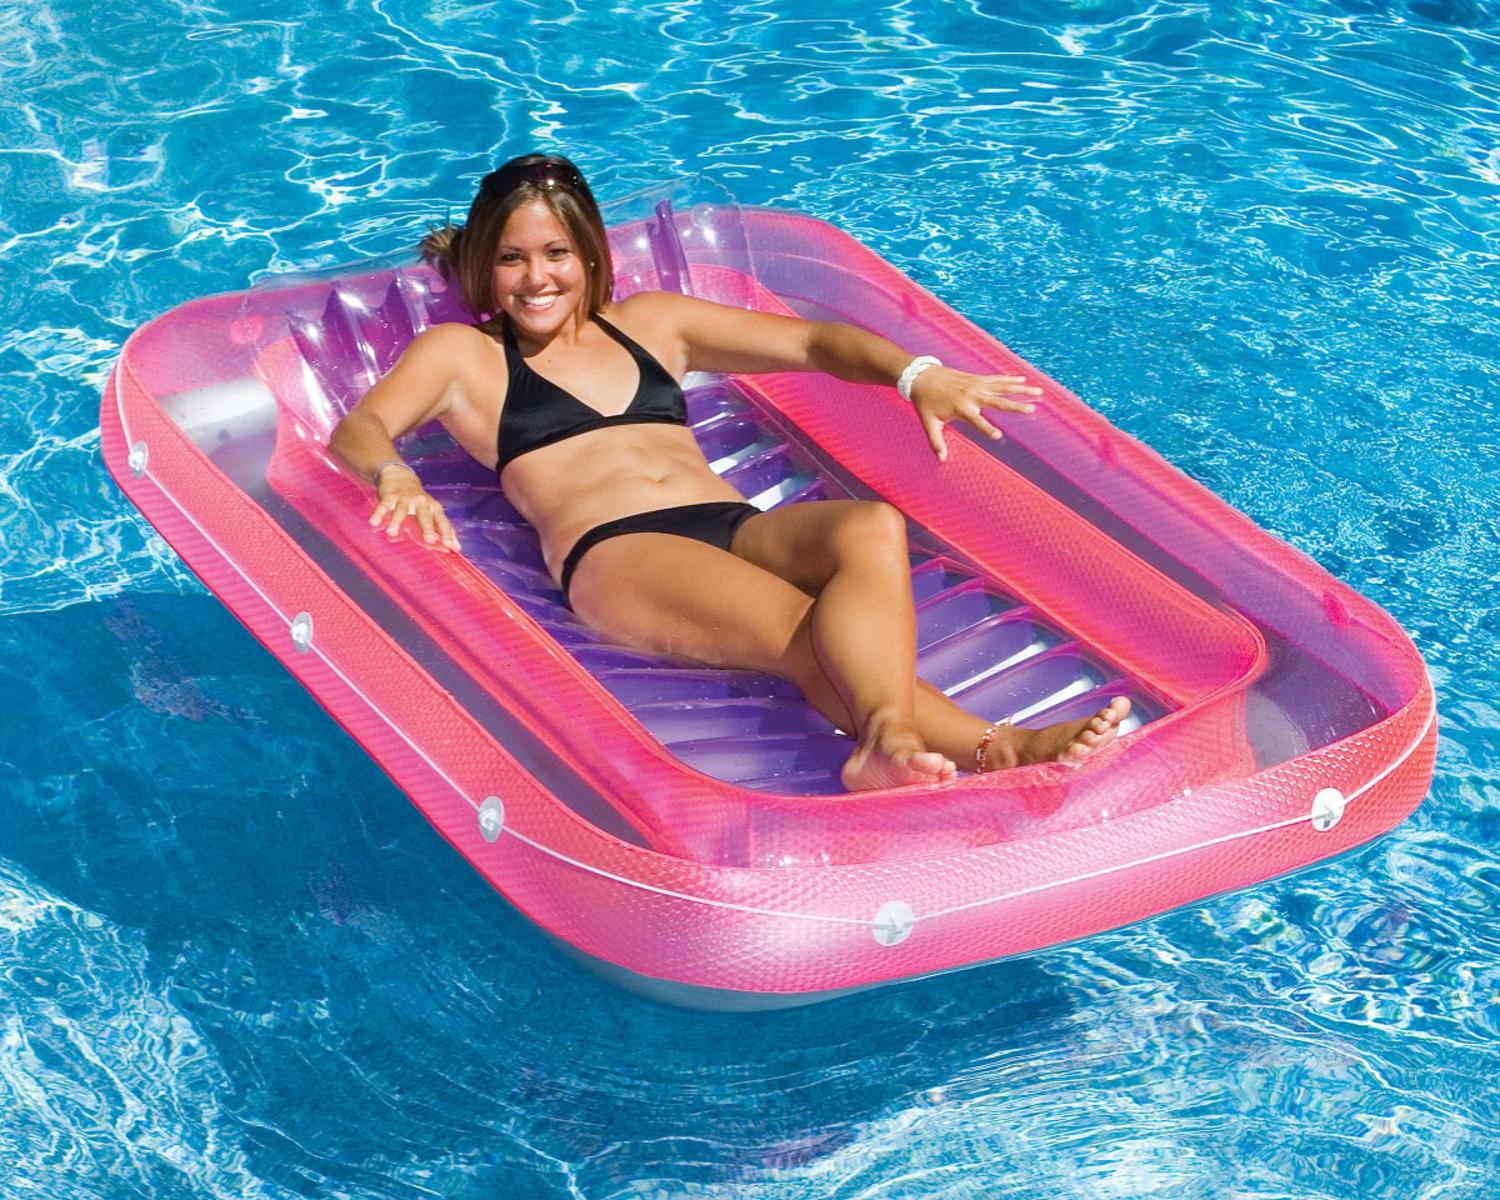 """71"""" Water Sports Transparent Pink, Purple and Gray Inflatable Suntan Tub Swimming Pool Raft Lounger by Swim Central"""